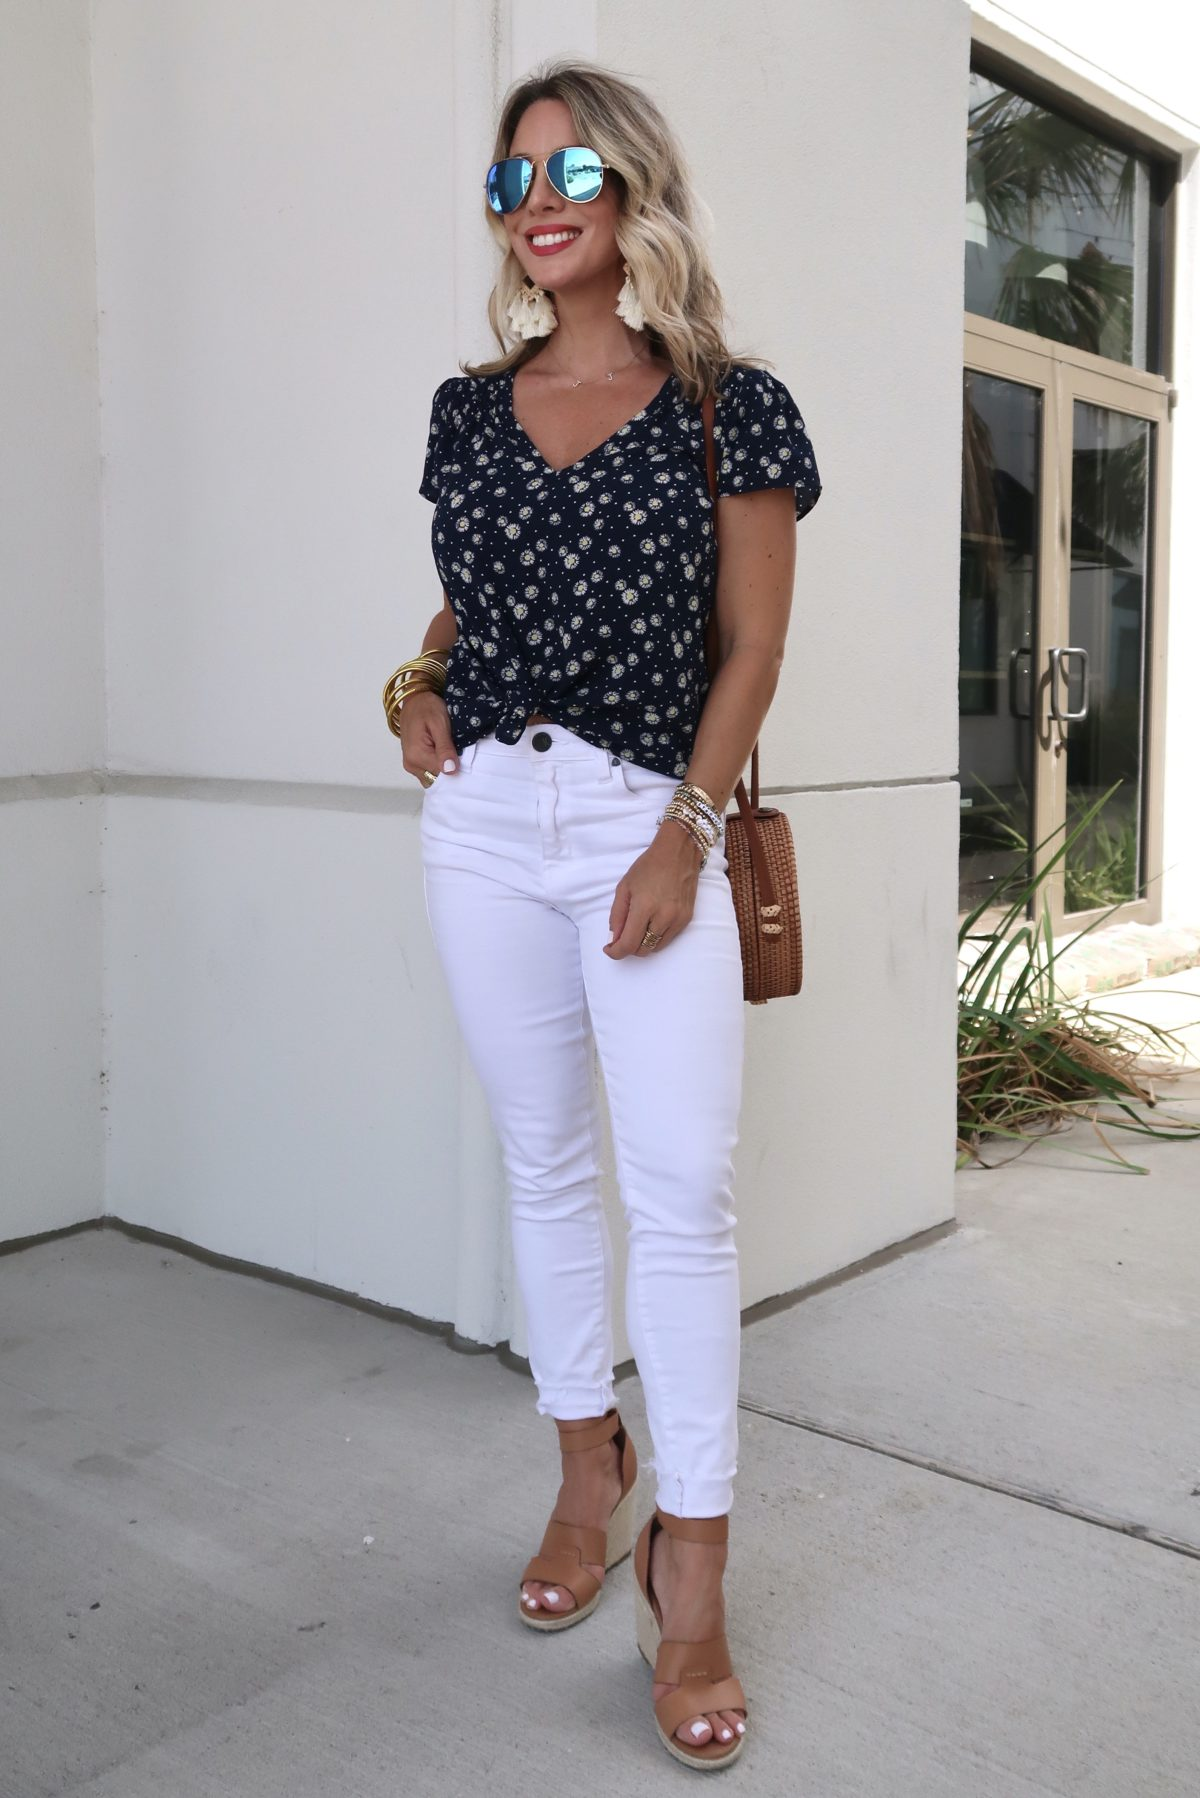 Outfit Roundup, Daisy Print Top, White Skinny Jeans, Wedges, Circle Woven Bag